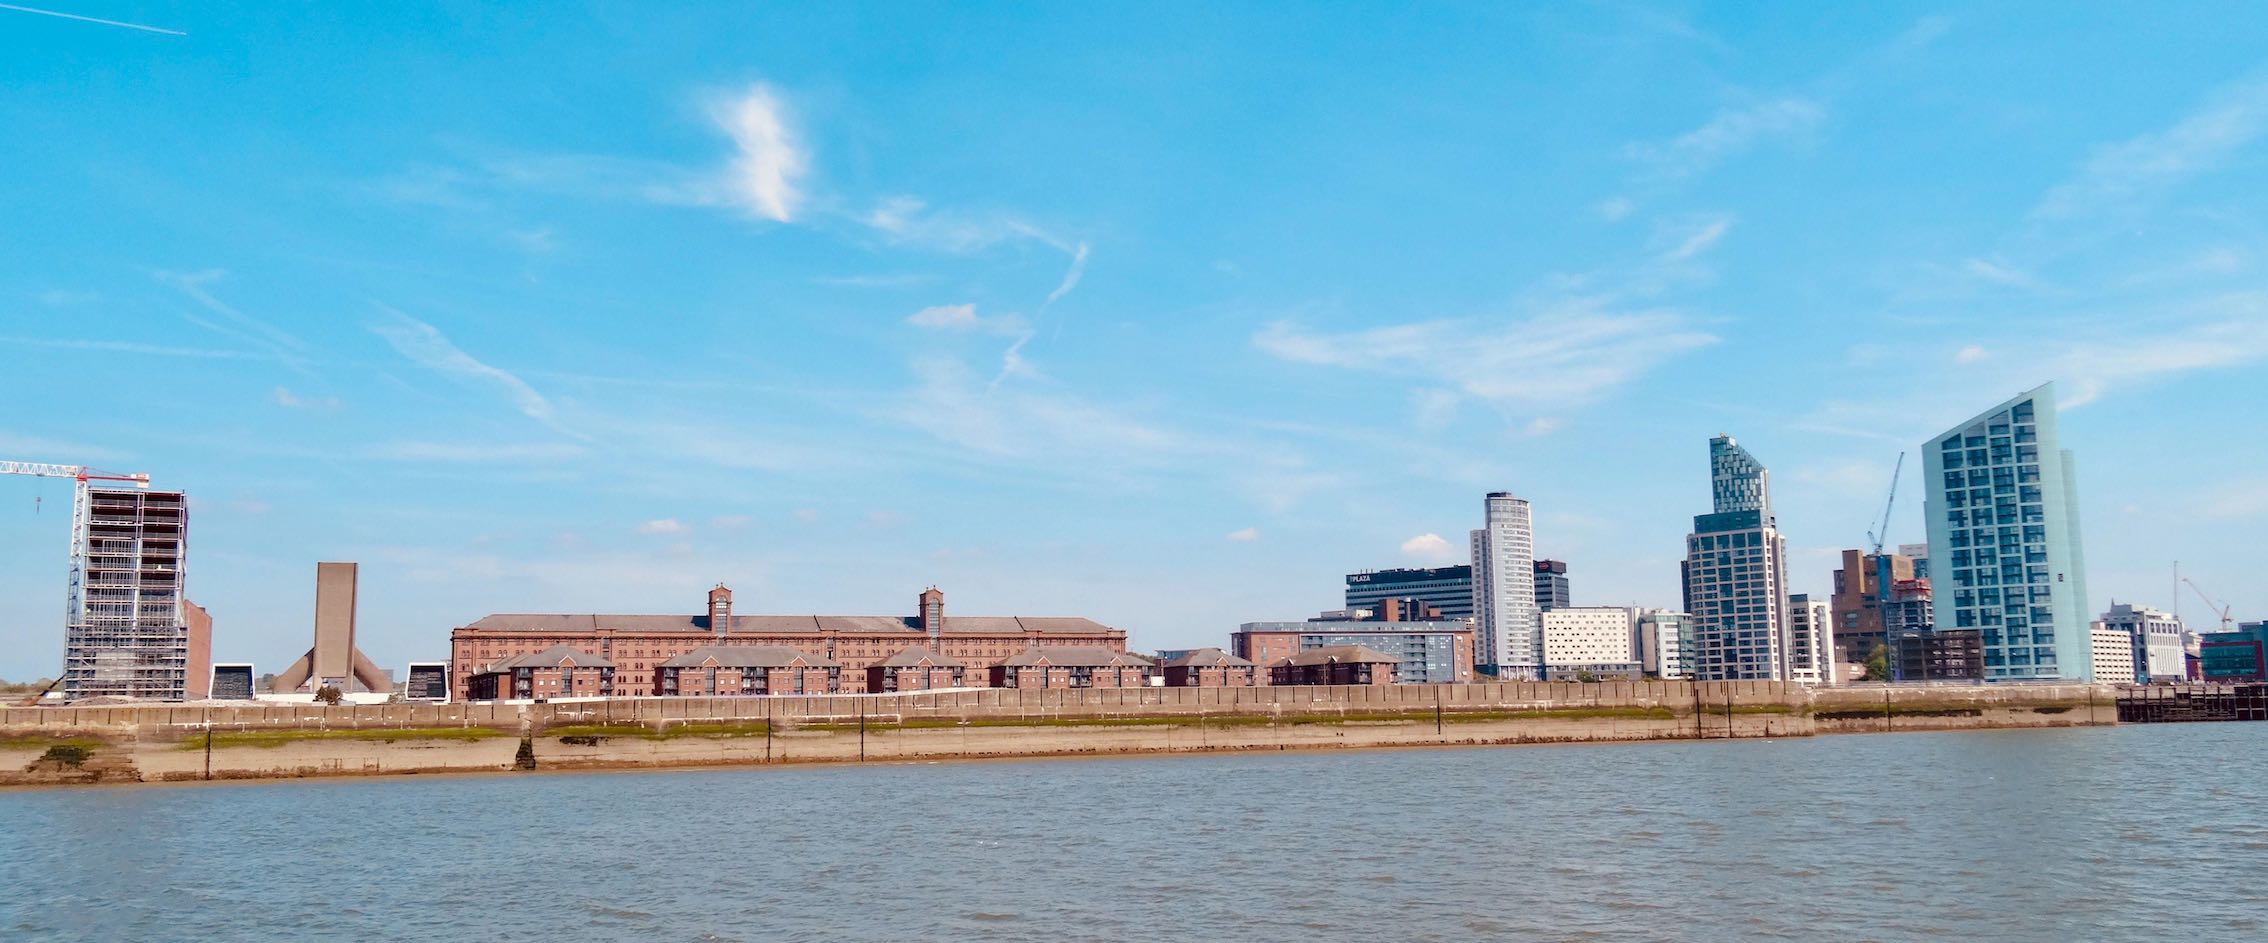 Experience the Ferry Cross the Mersey in Liverpool